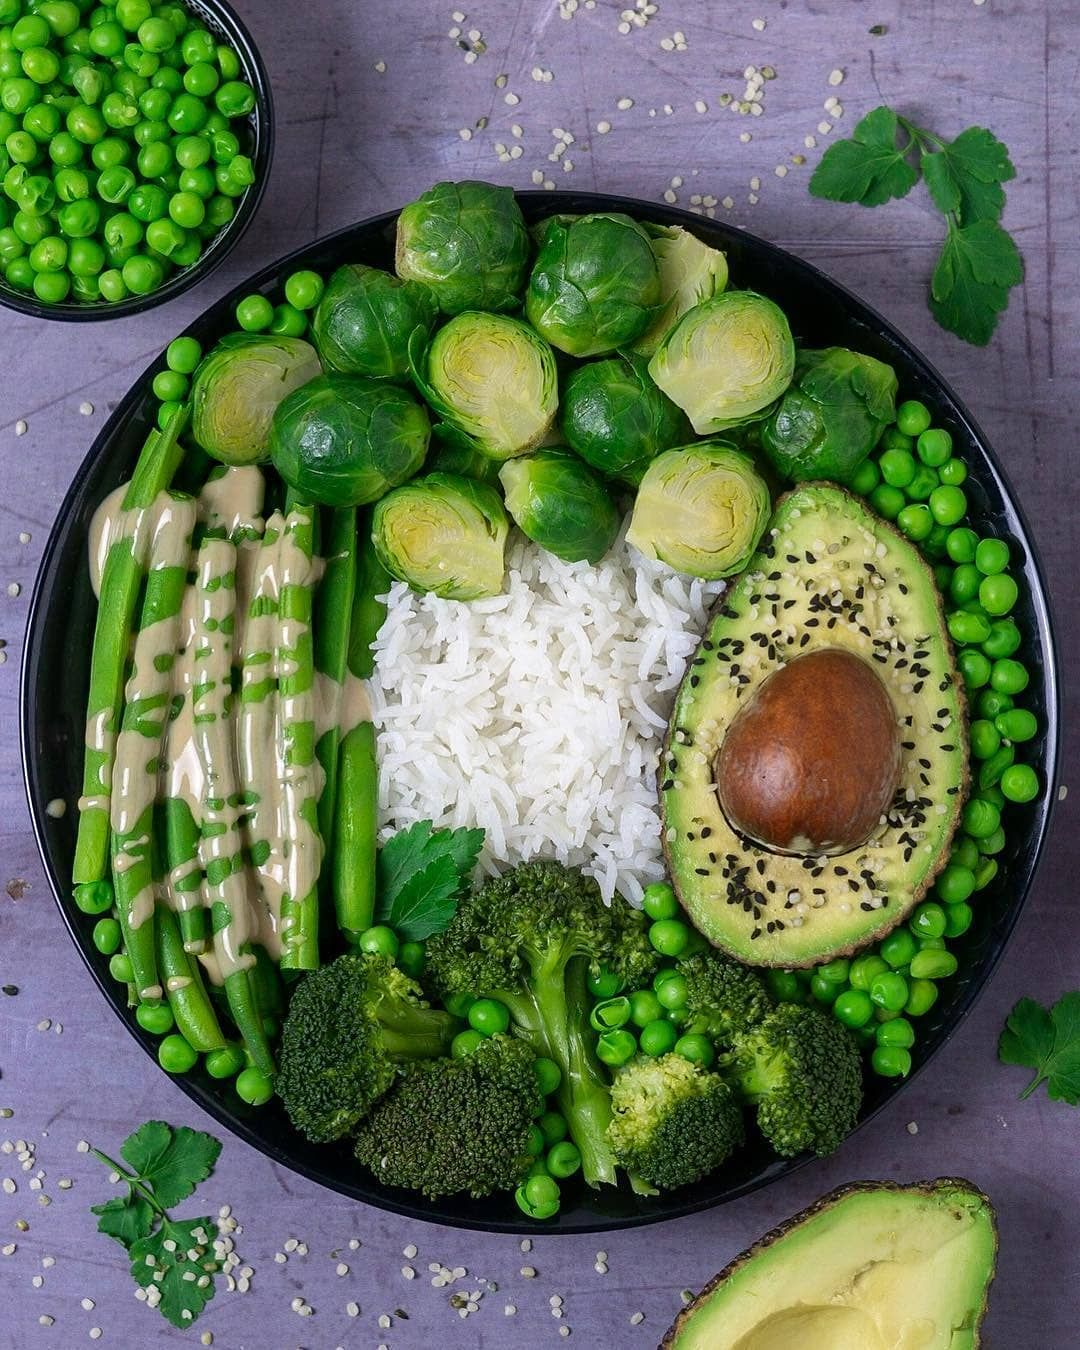 Healthy Vegan Recipes On Instagram Nutritious Green